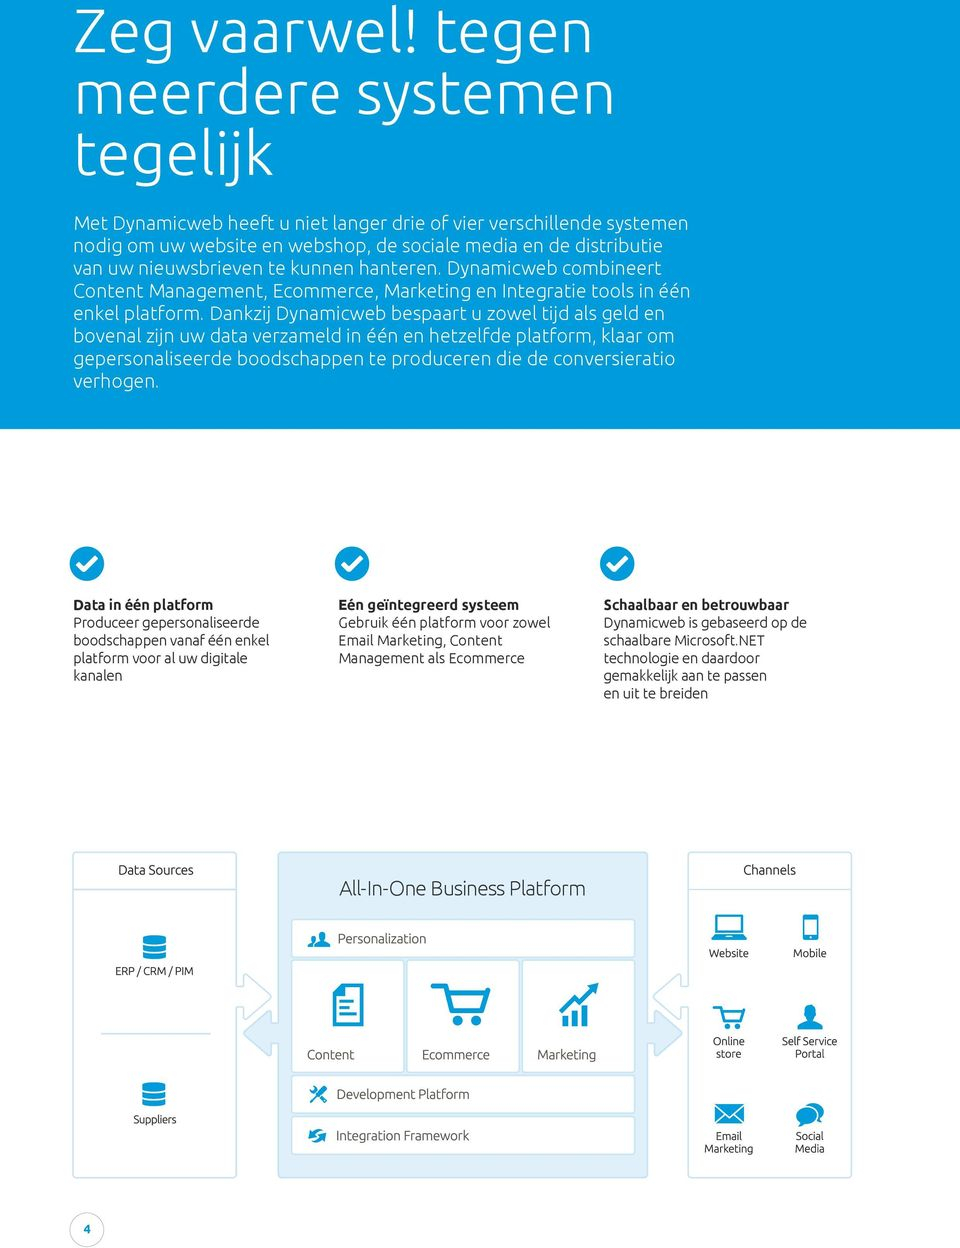 kunnen hanteren. Dynamicweb combineert Content Management, Ecommerce, Marketing en Integratie tools in één enkel platform.